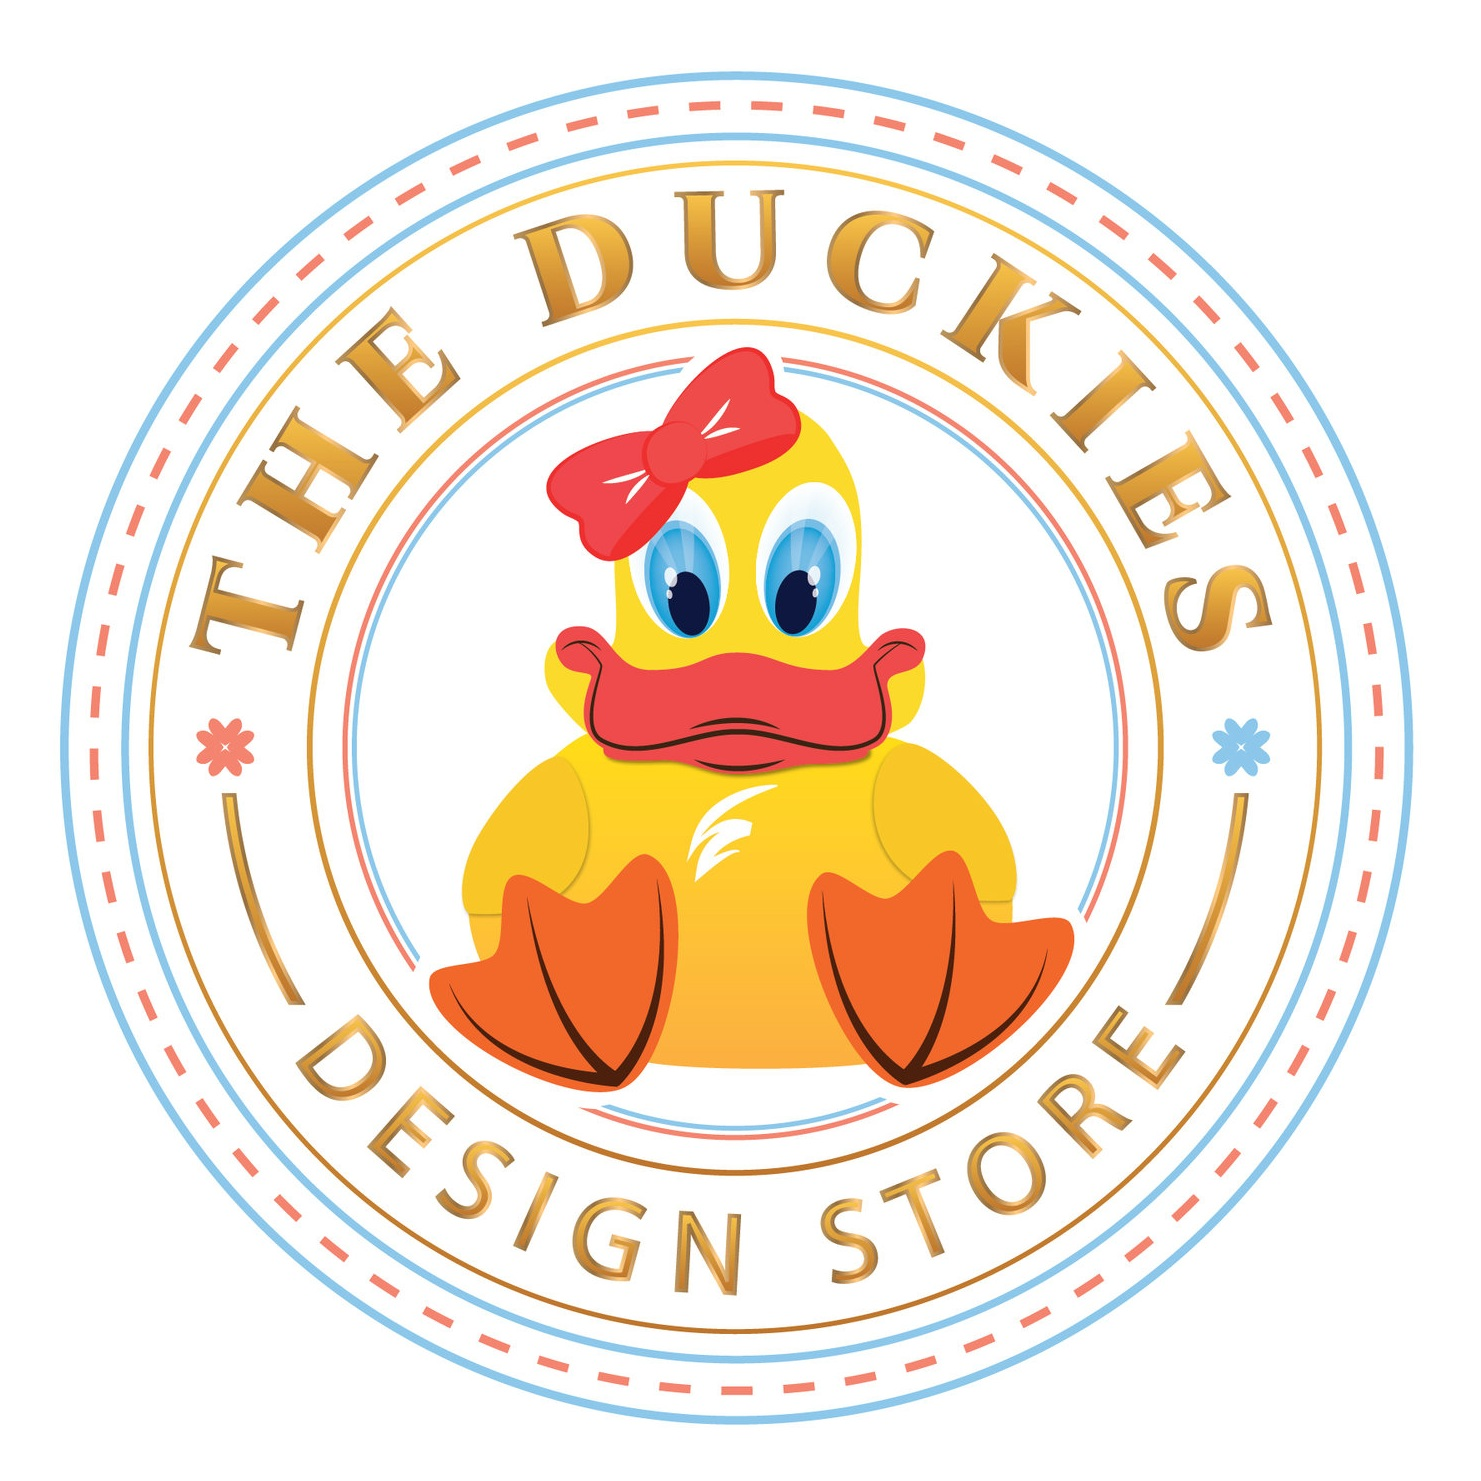 THE DUCKIES - DESIGN STORE